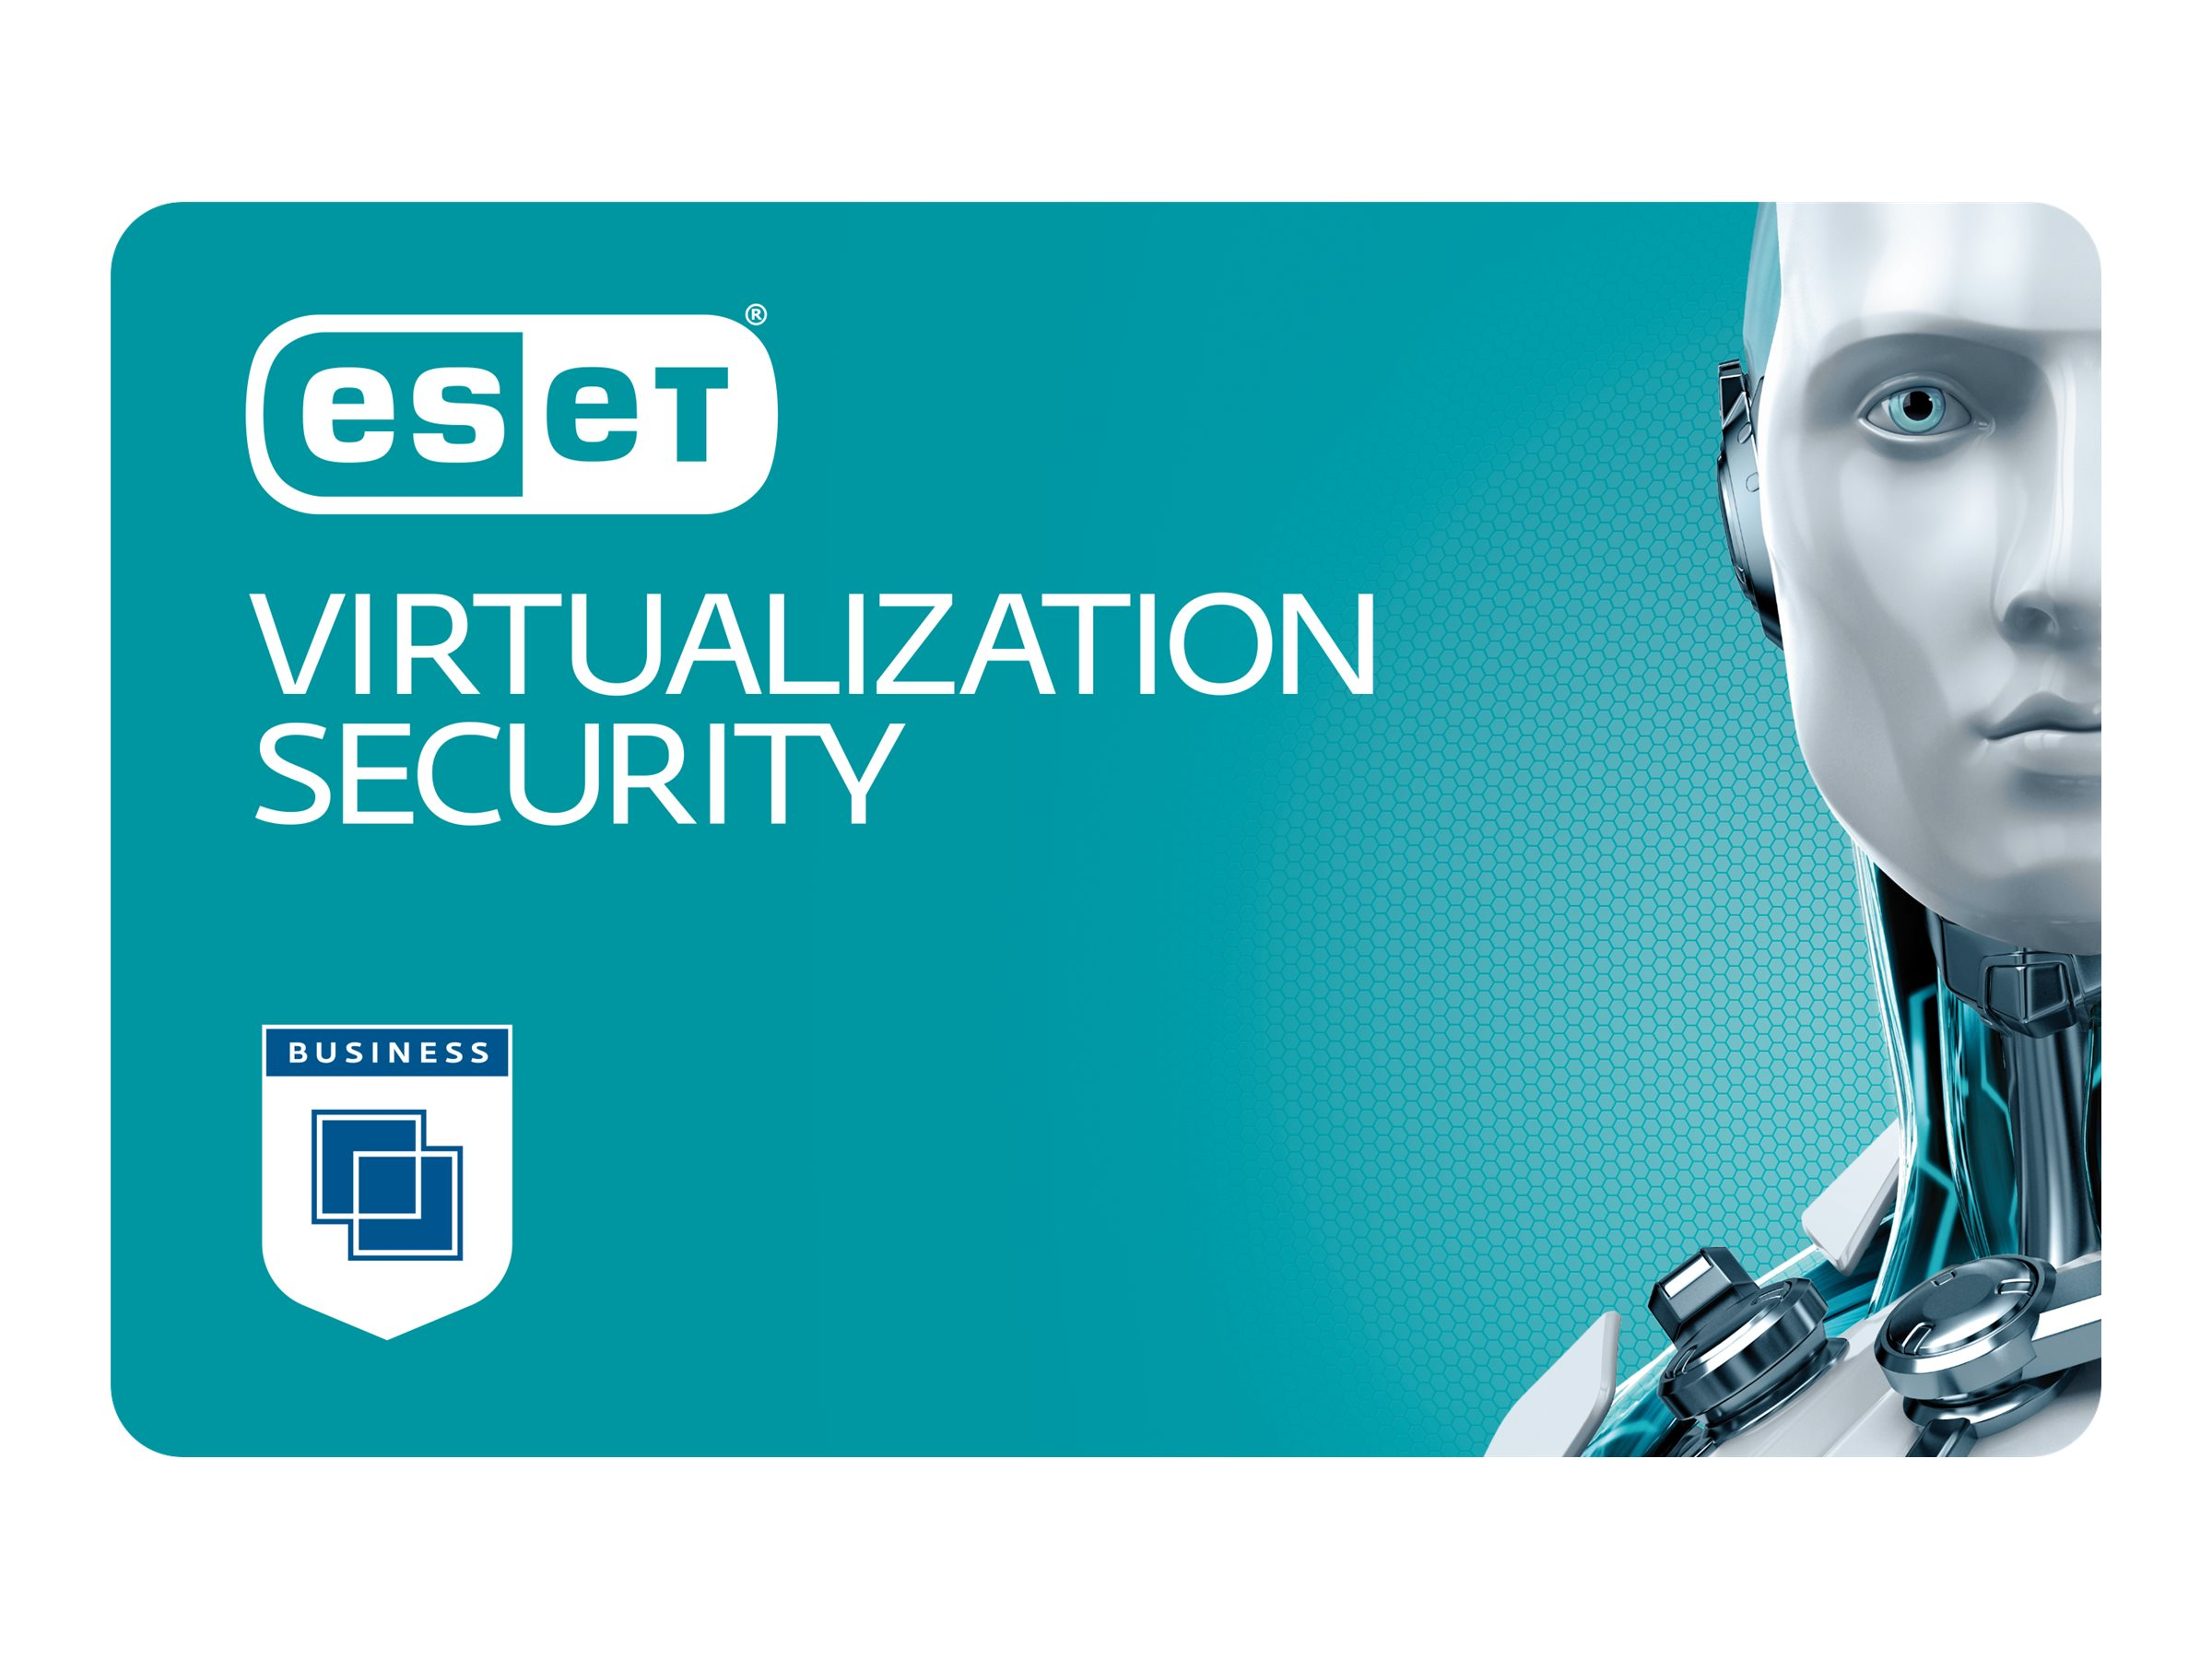 ESET Virtualization Security - Abonnement-Lizenz (2 Jahre) - 1 virtuelle Maschine - Volumen - 250-499 Lizenzen